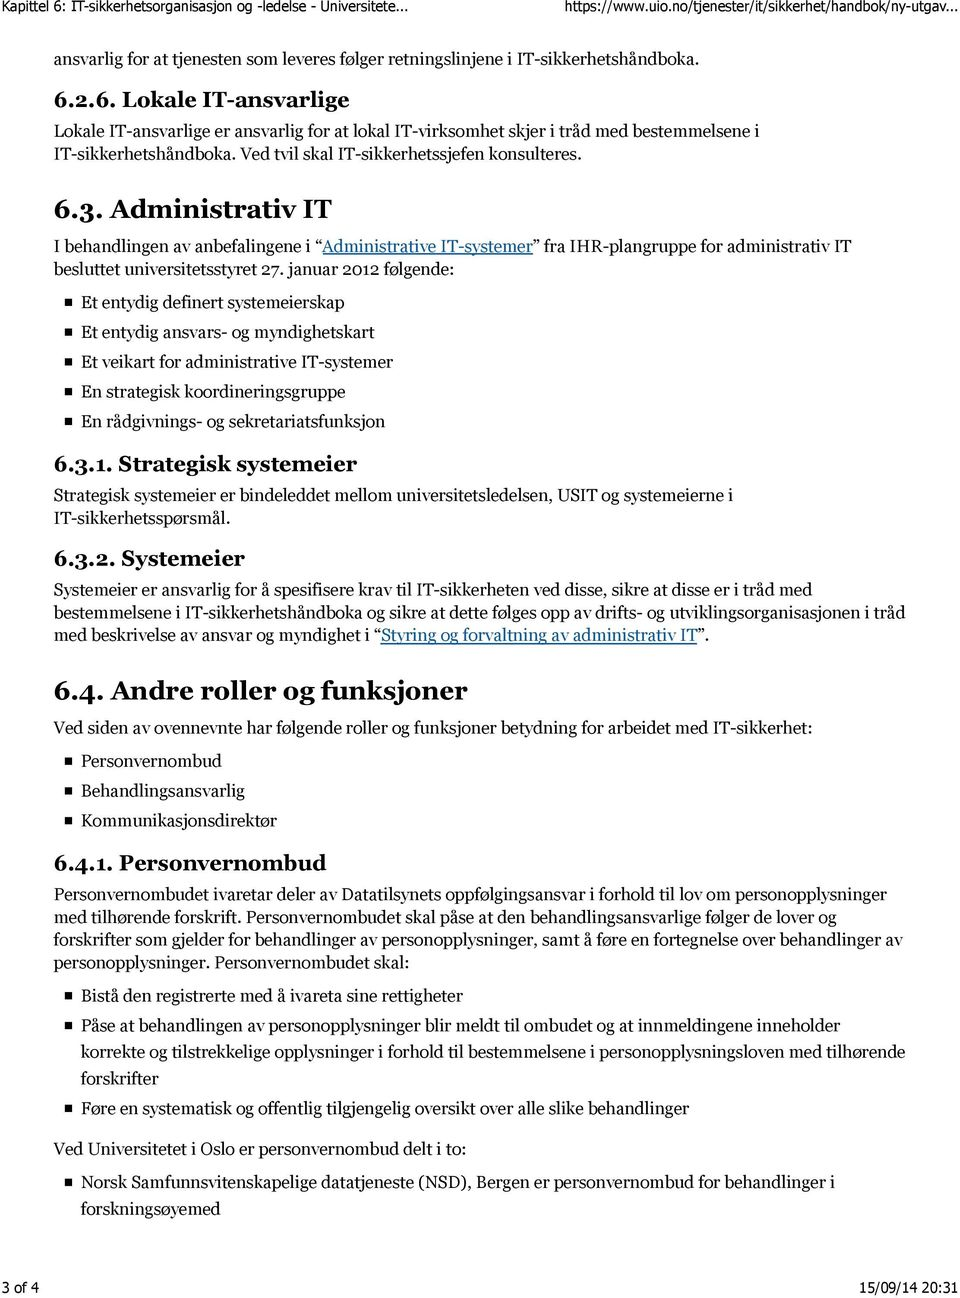 Administrativ IT I behandlingen av anbefalingene i Administrative IT-systemer fra IHR-plangruppe for administrativ IT besluttet universitetsstyret 27.